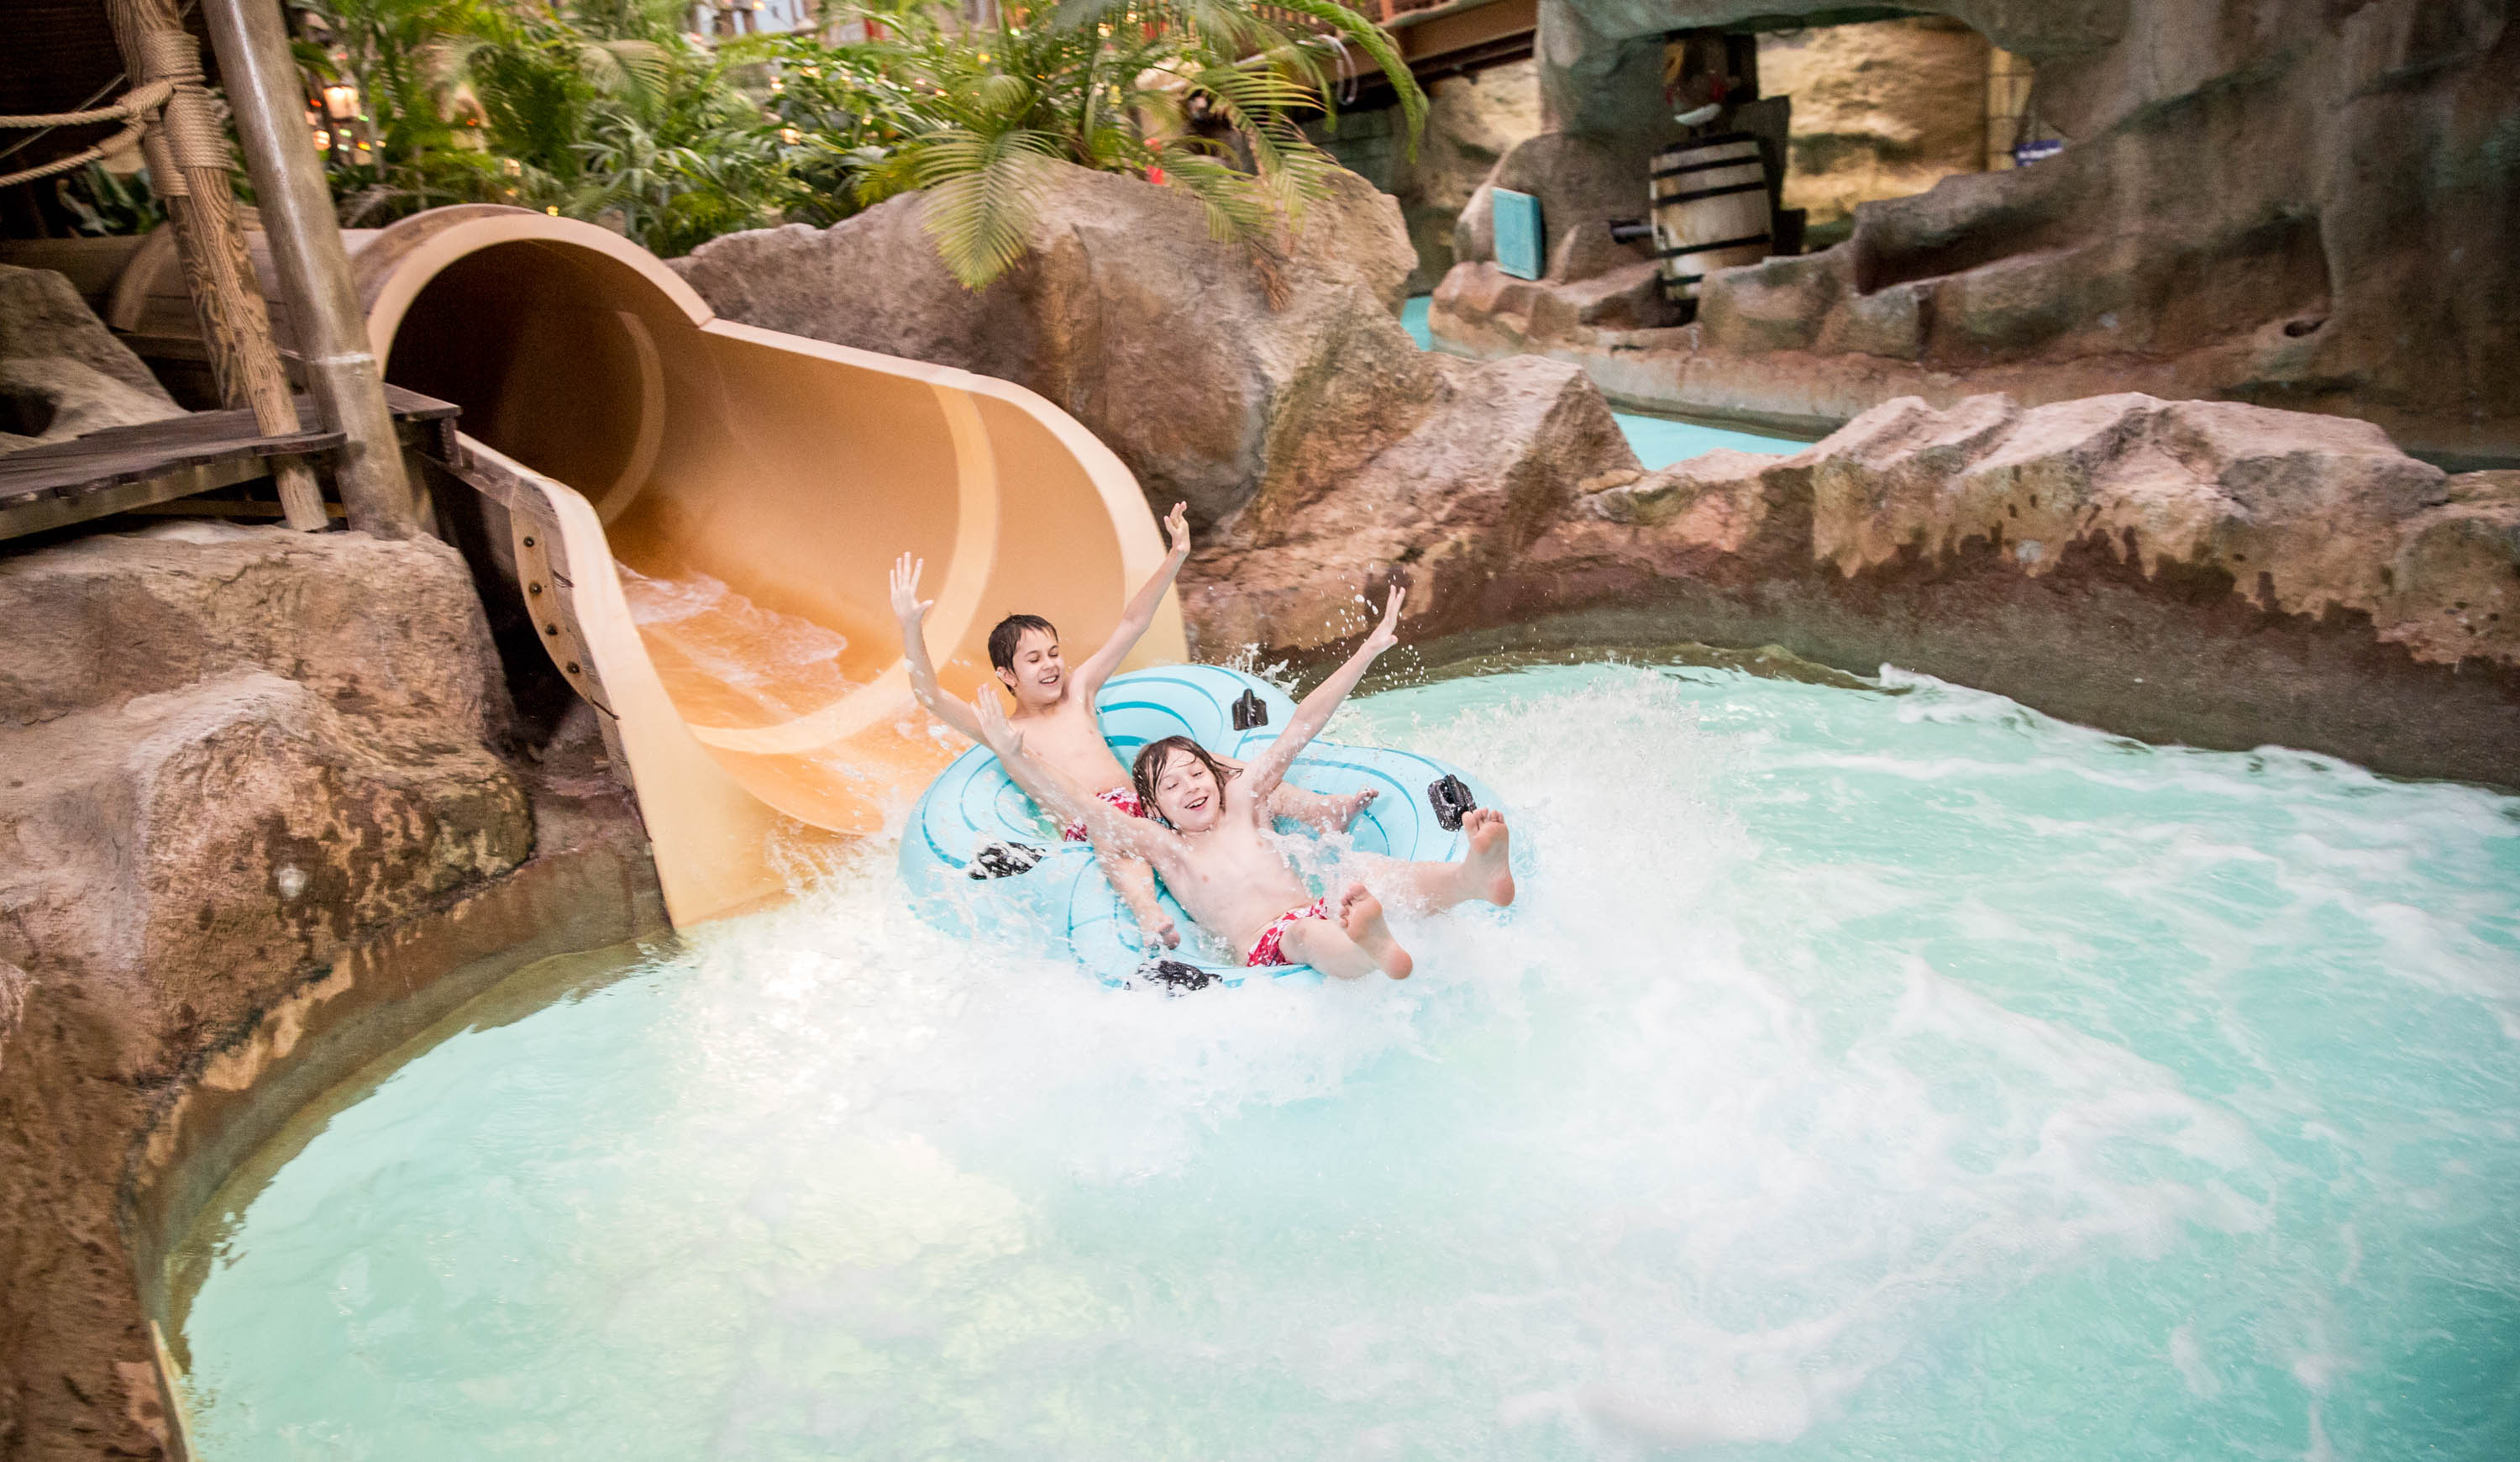 Waterpark Towersstreet Your Premier Alton Towers Guide